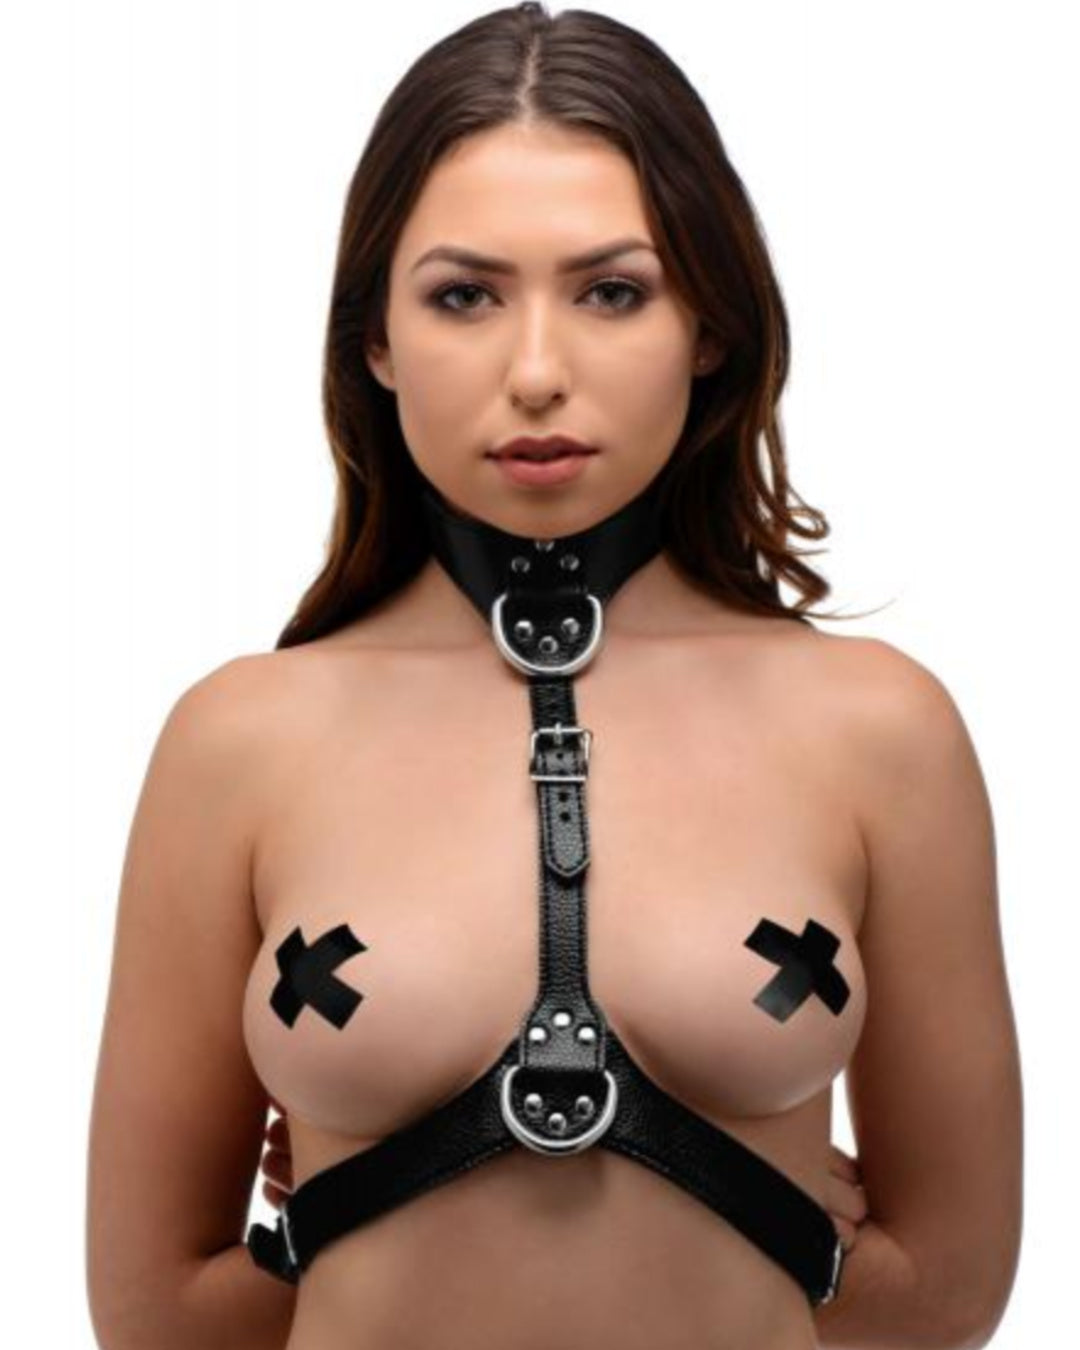 Female Leather Chest Harness - Black Front View Worn by Model